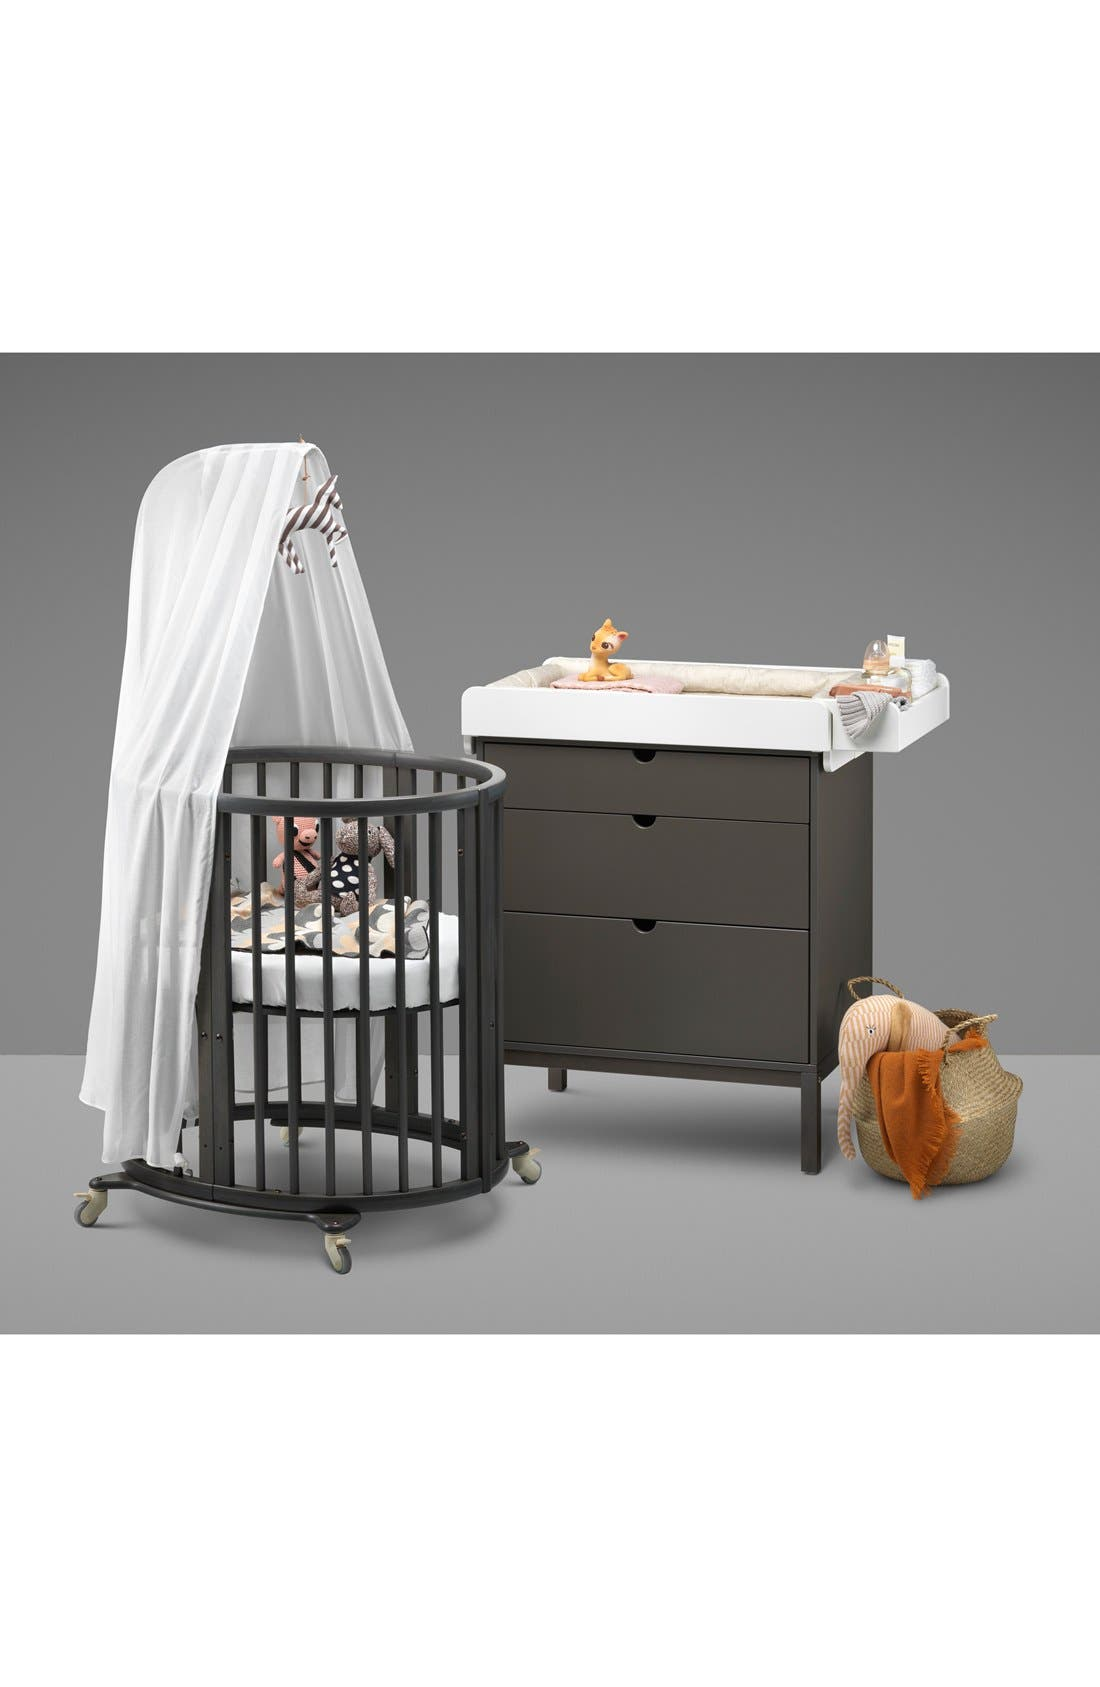 Convertible Sleepi Crib & Toddler Bed,                             Alternate thumbnail 3, color,                             Hazy Grey